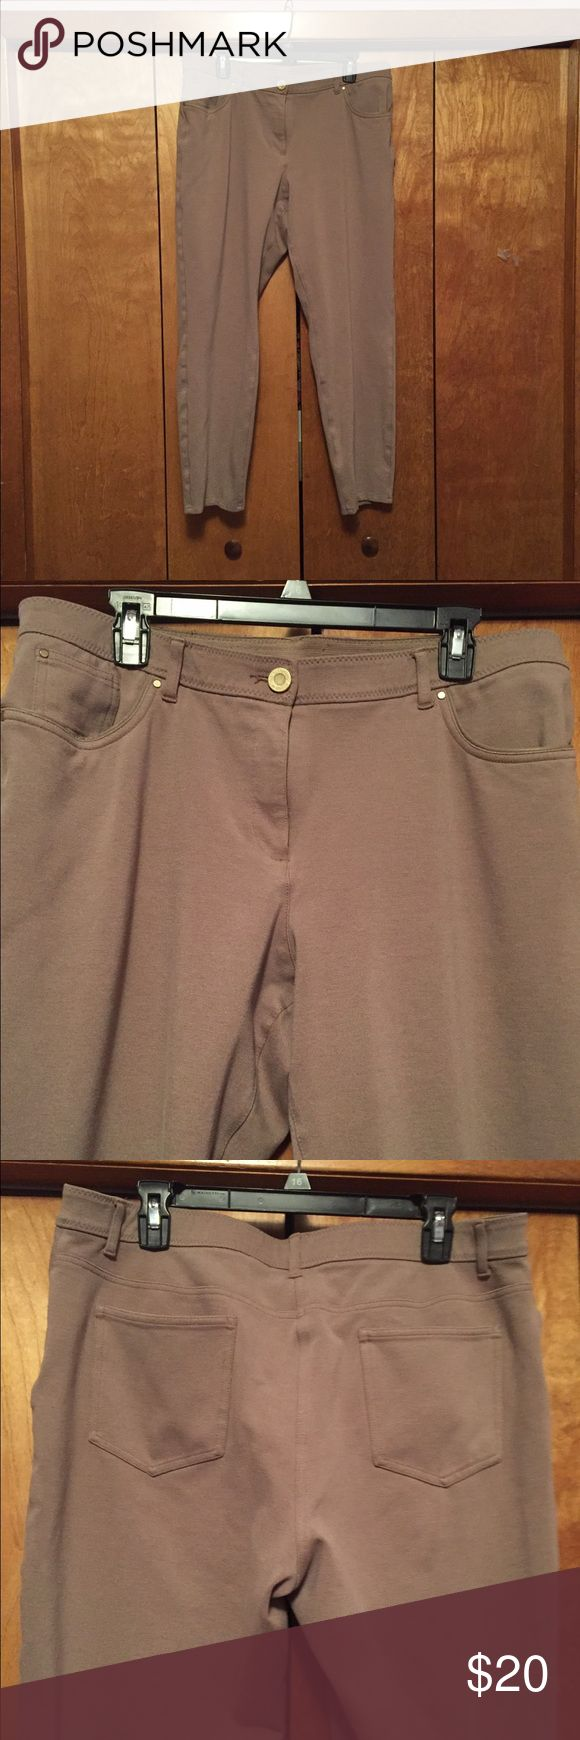 Chico's light brown pants Chico's So Slimmings Pants. Light brown (camel colored). 2 front 2 back pockets. Zipper and button closure Chico's Pants Straight Leg